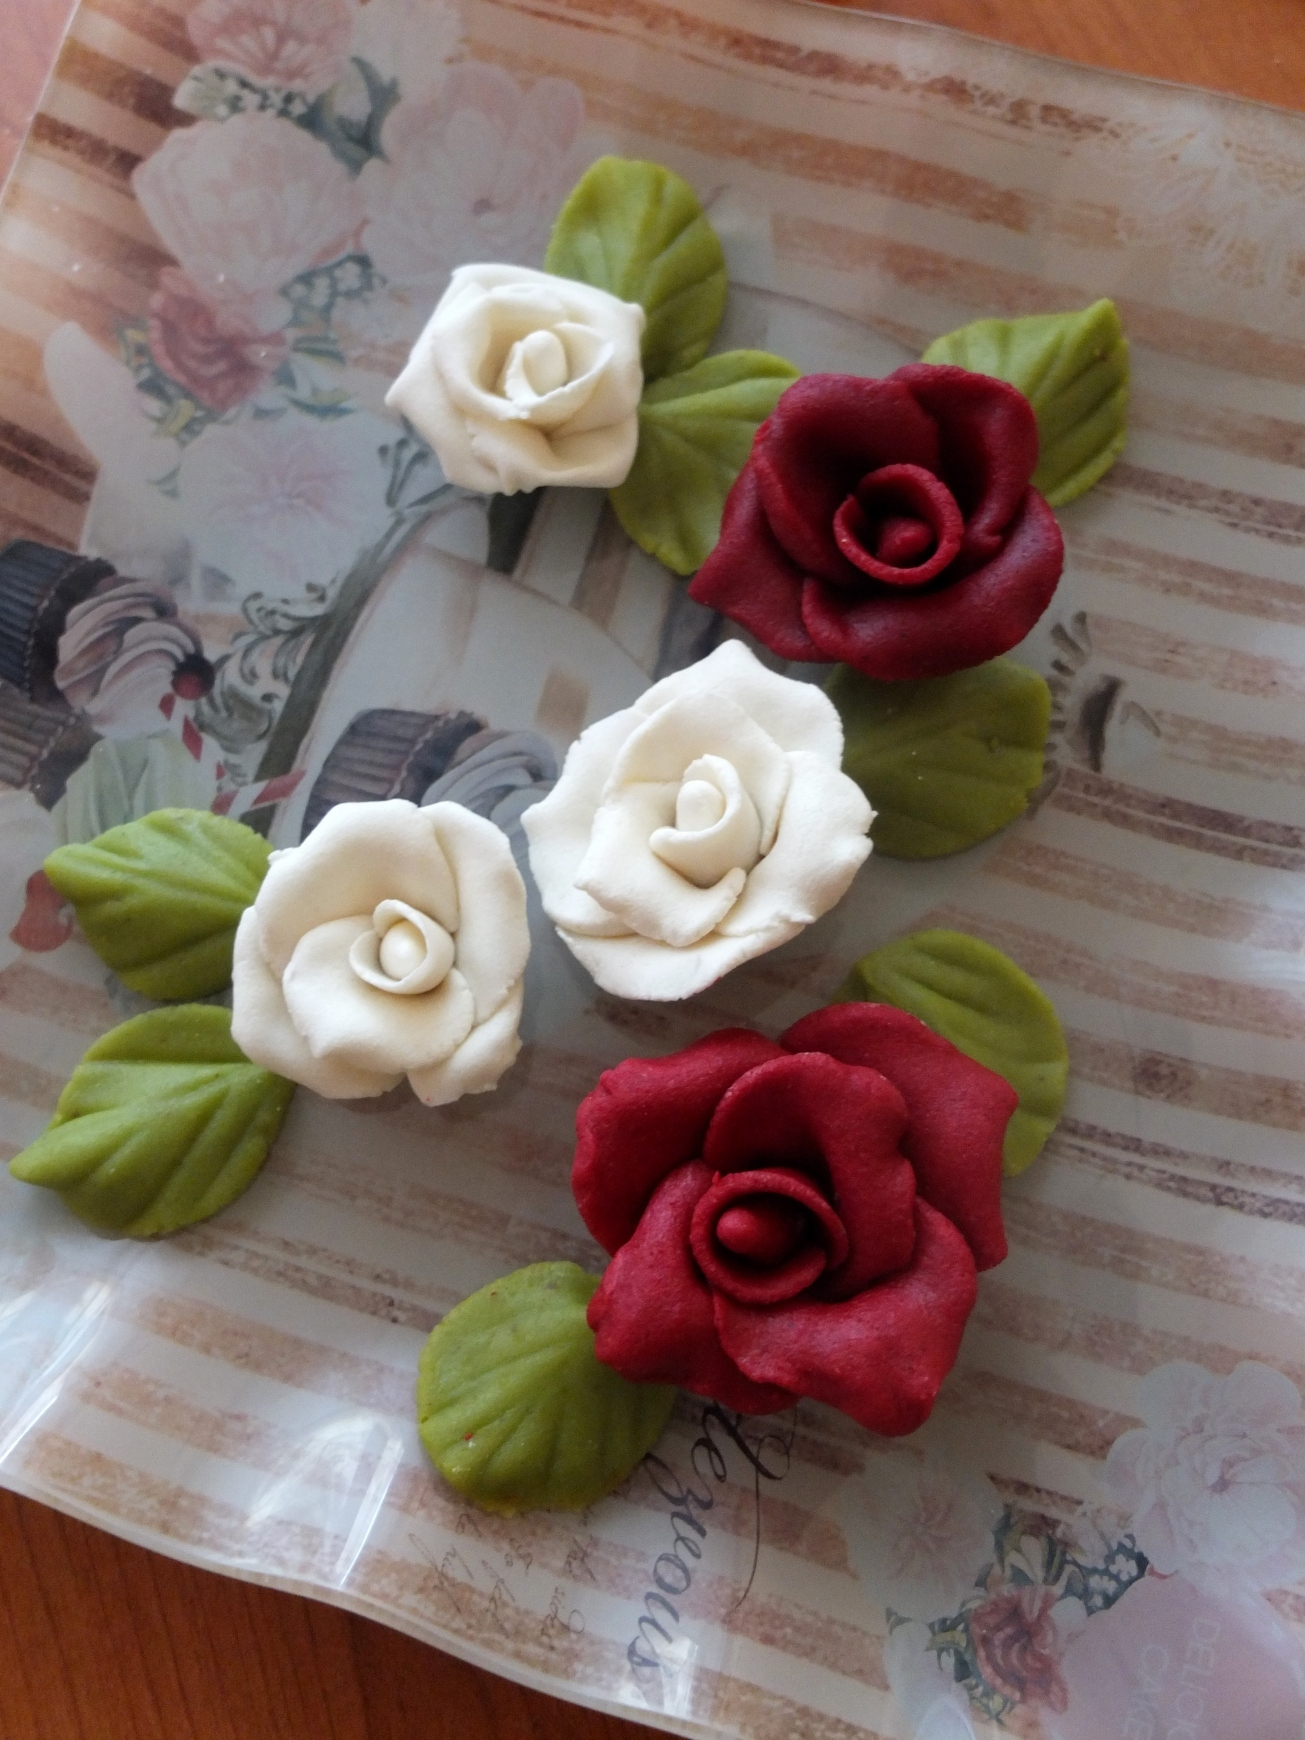 Marzipan roses and leaves